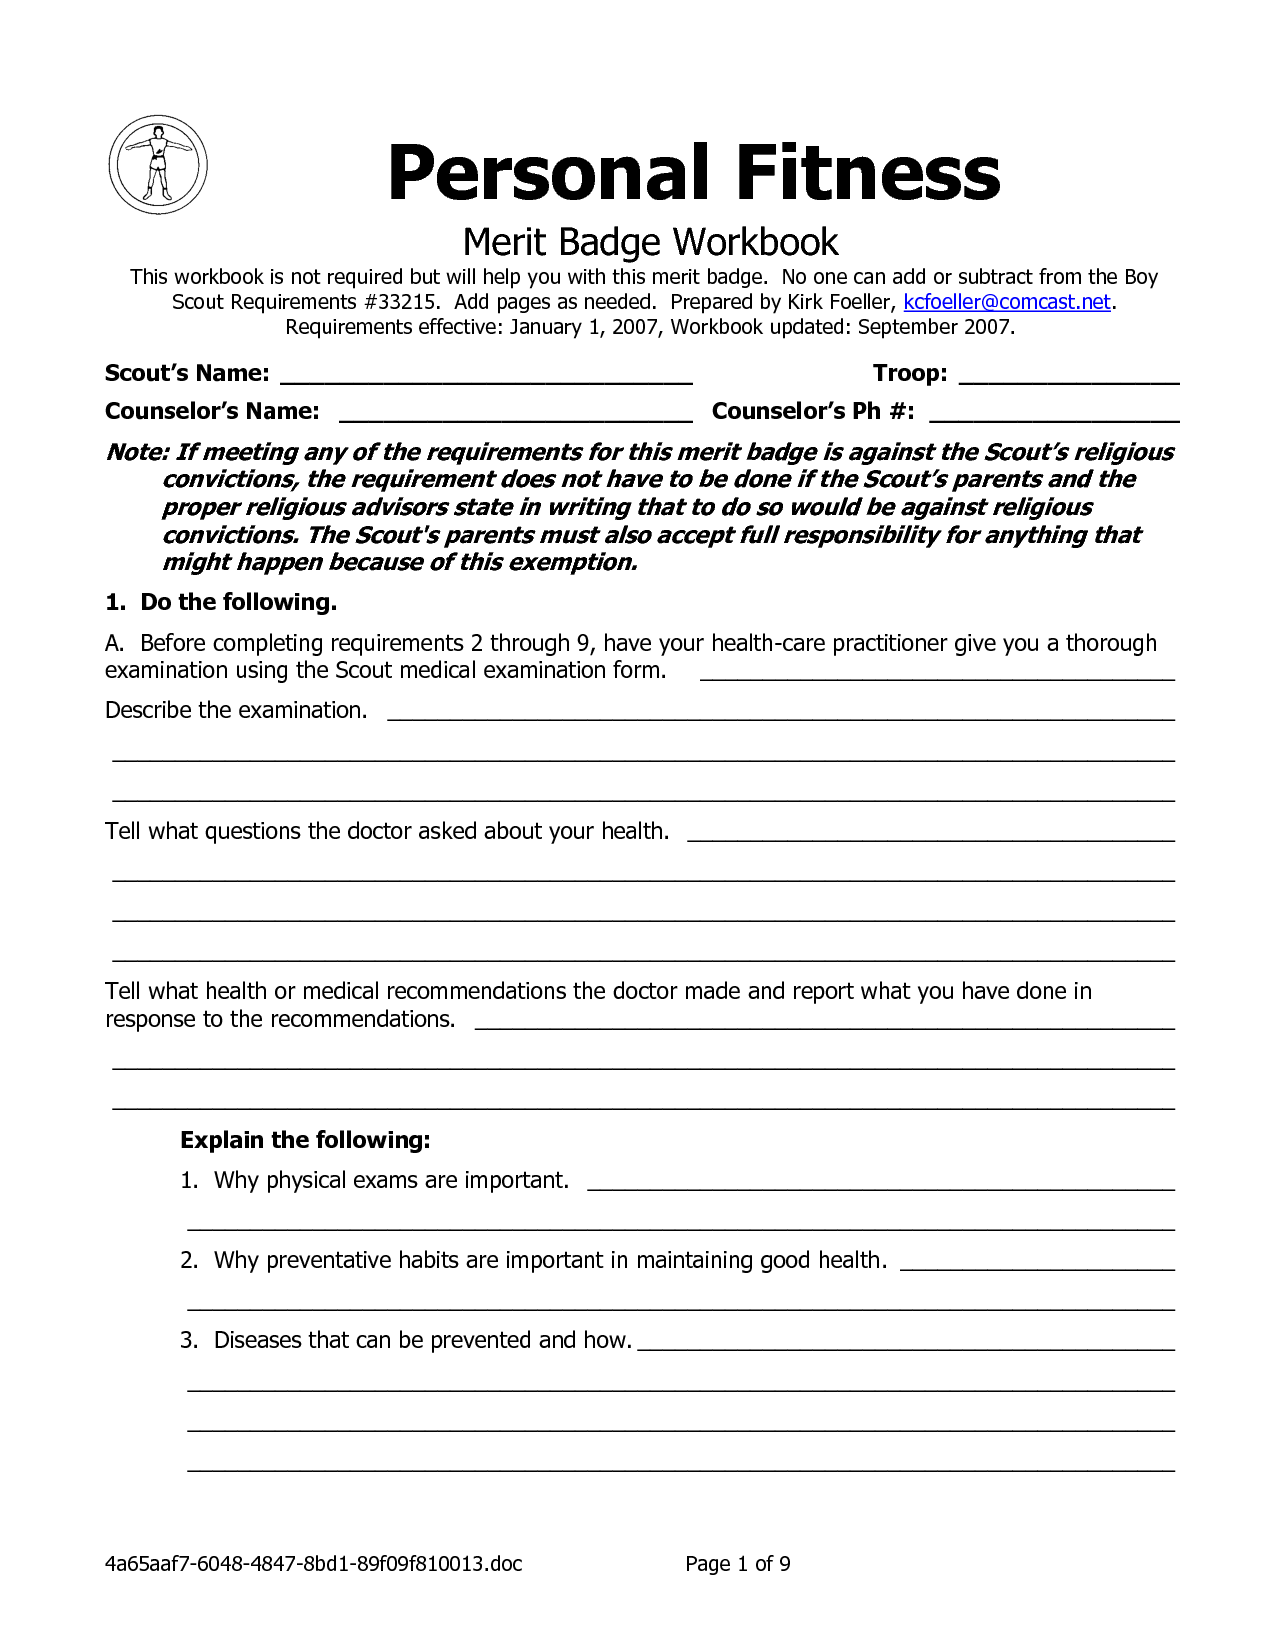 Personal Fitness Merit Badge Worksheet Answers